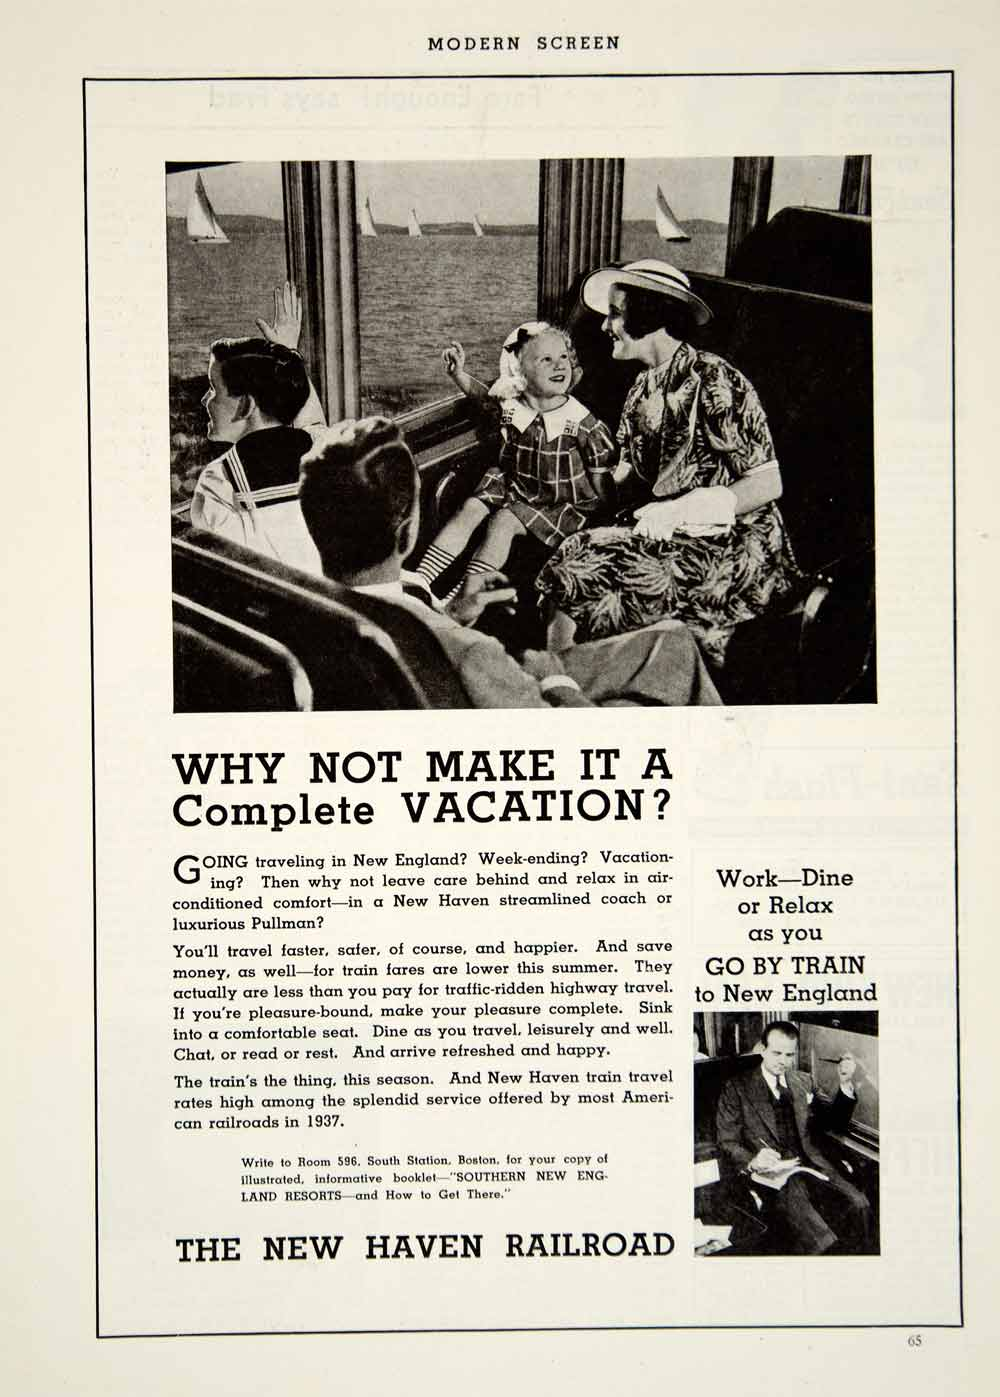 1937 Ad Vintage New Haven Railroad Train Travel New England Route YMS1